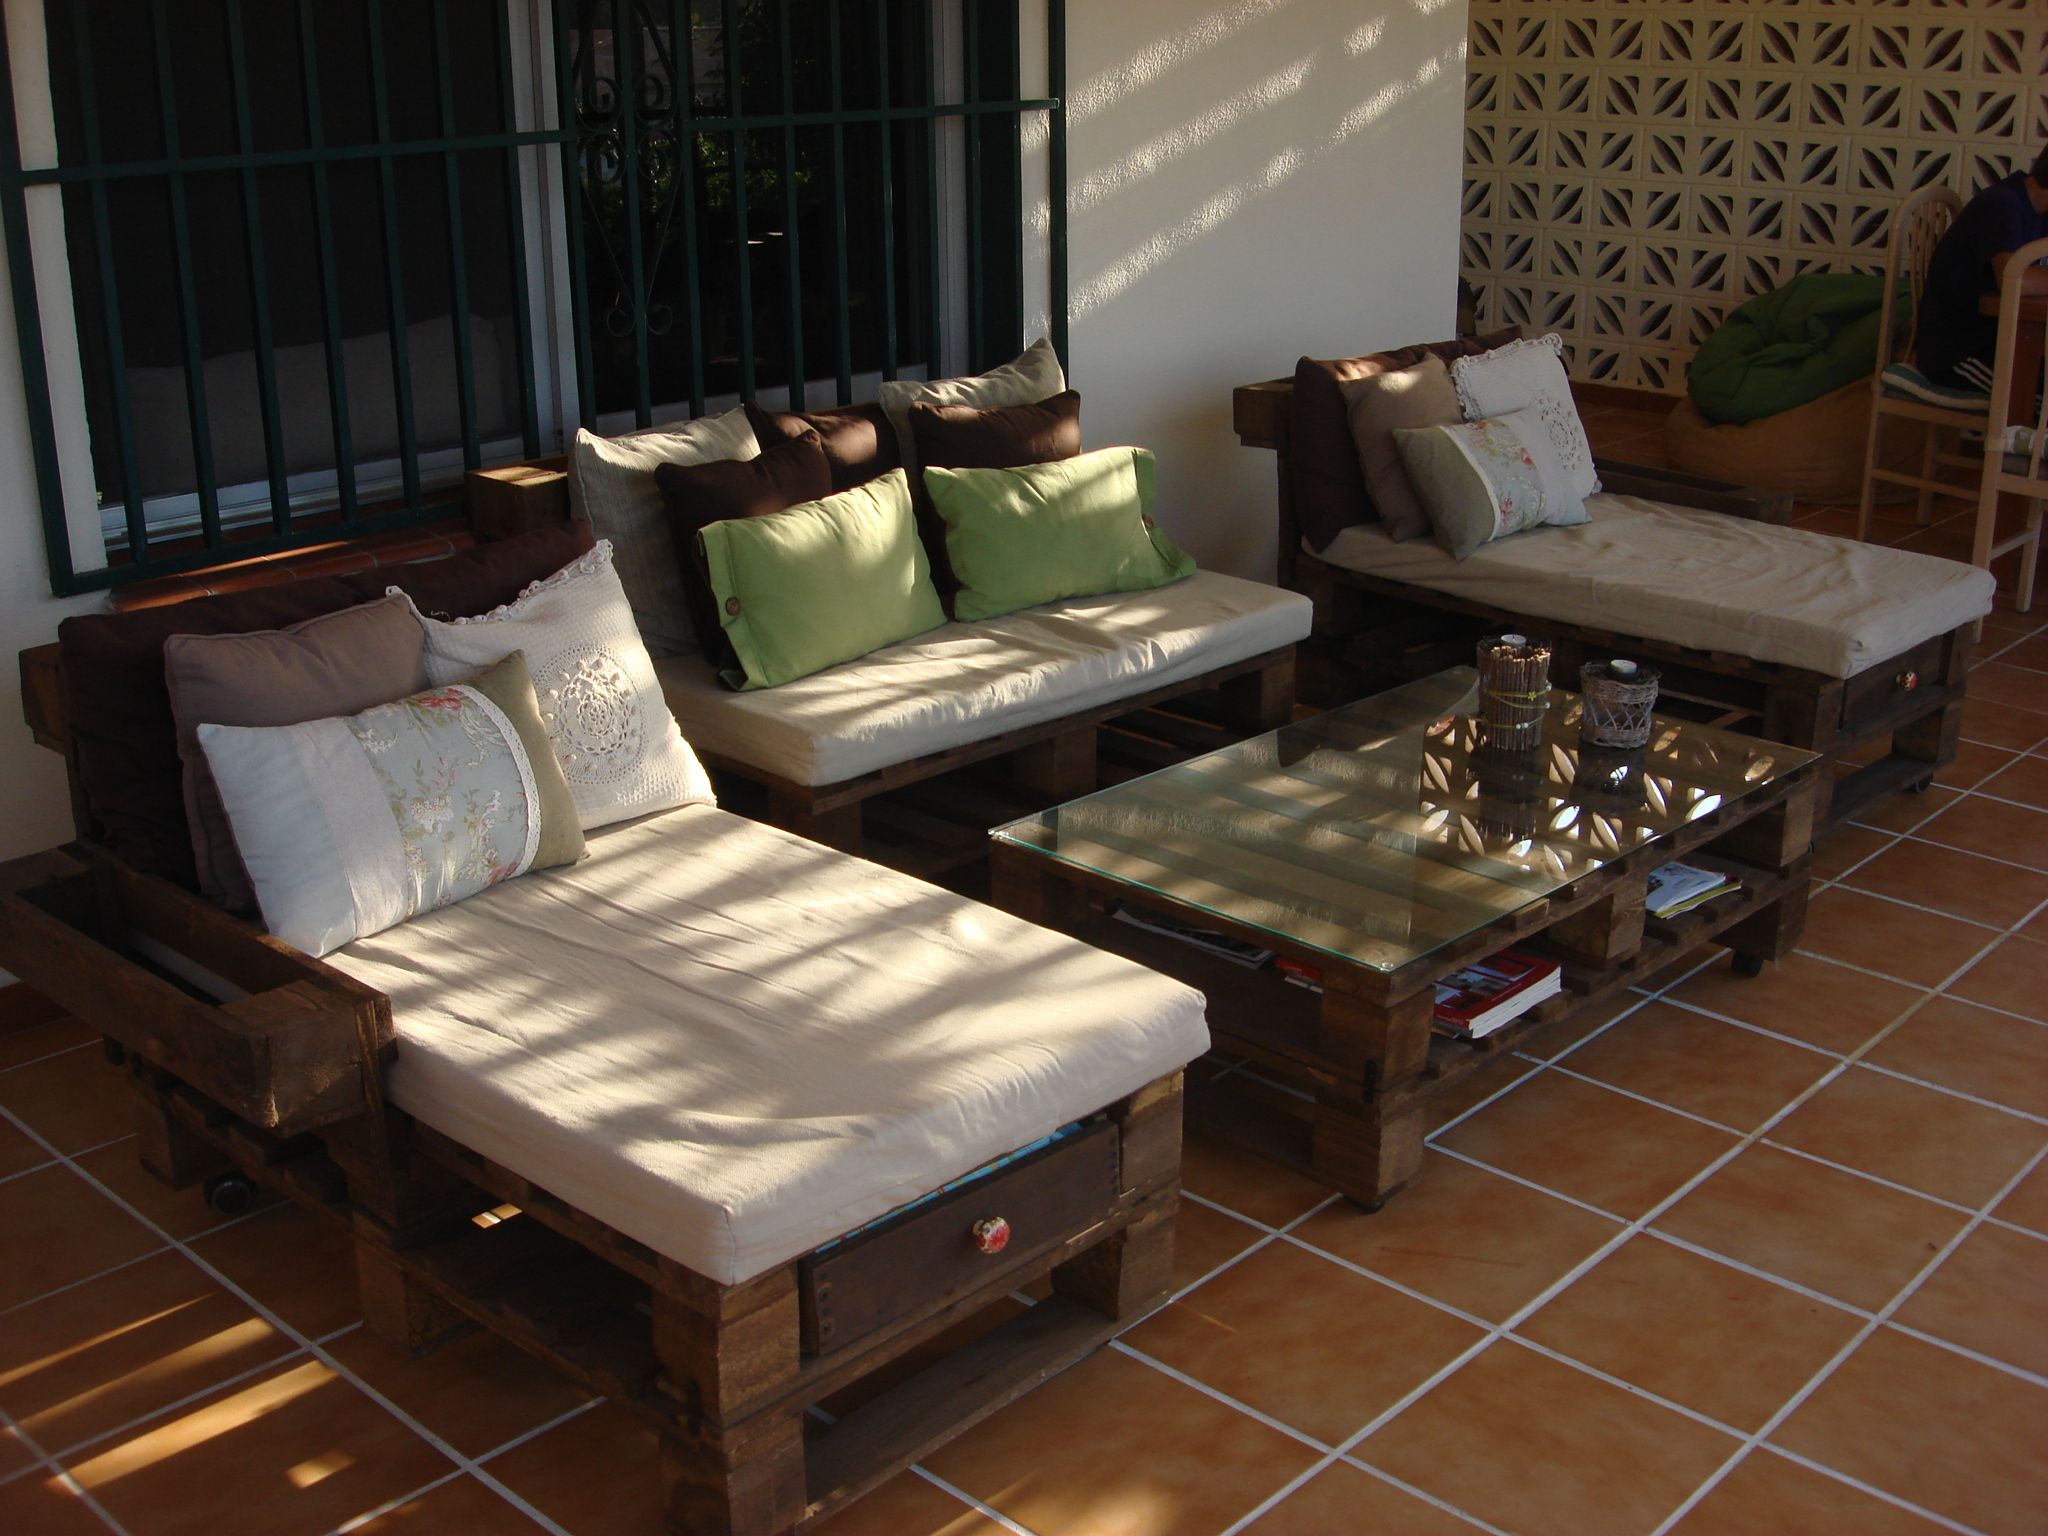 Muebles Chill Out Baratos Zona Chill Out Hecha Con Palets Reciclados Hoy Queremos